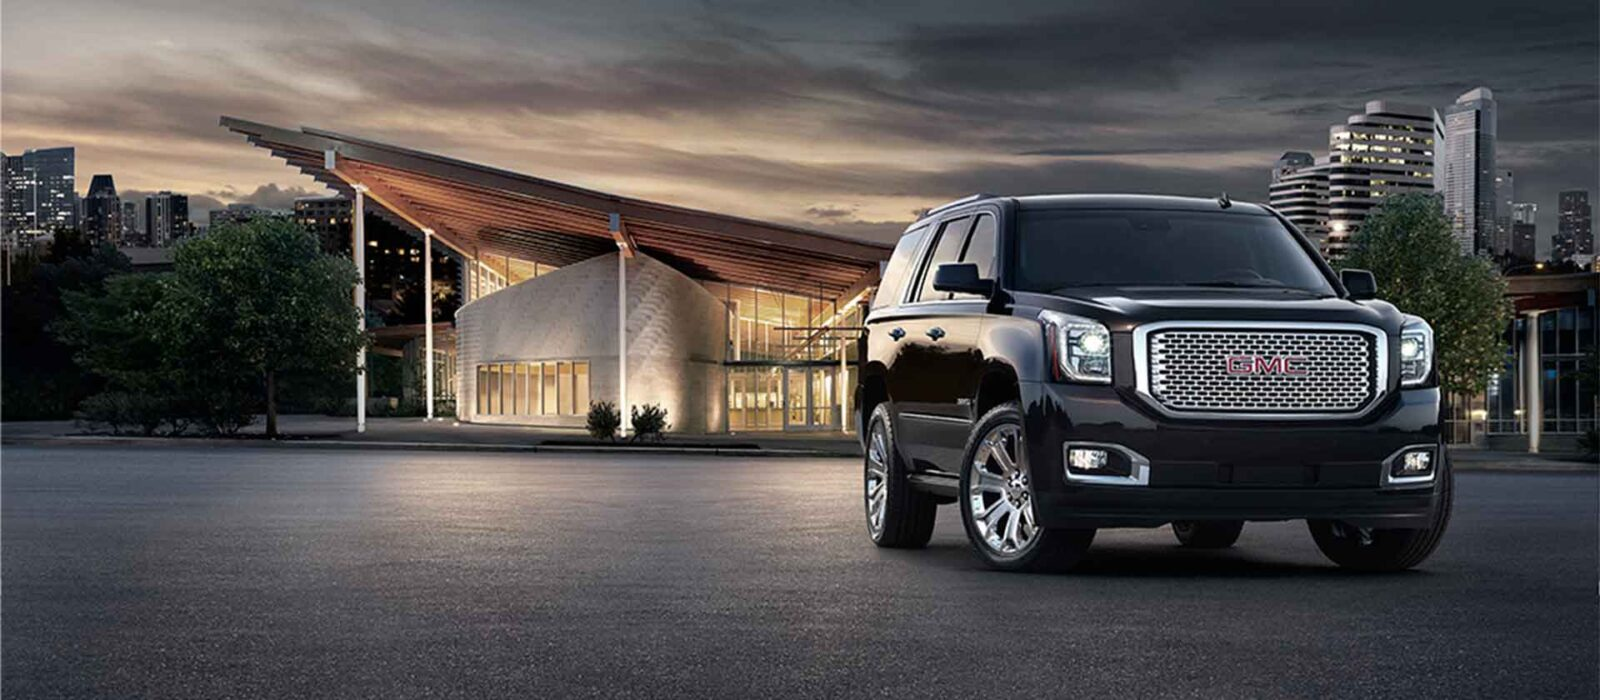 Mercedes Amg Suv >> 2016 GMC Yukon Denali wallpapers HD High Resolution